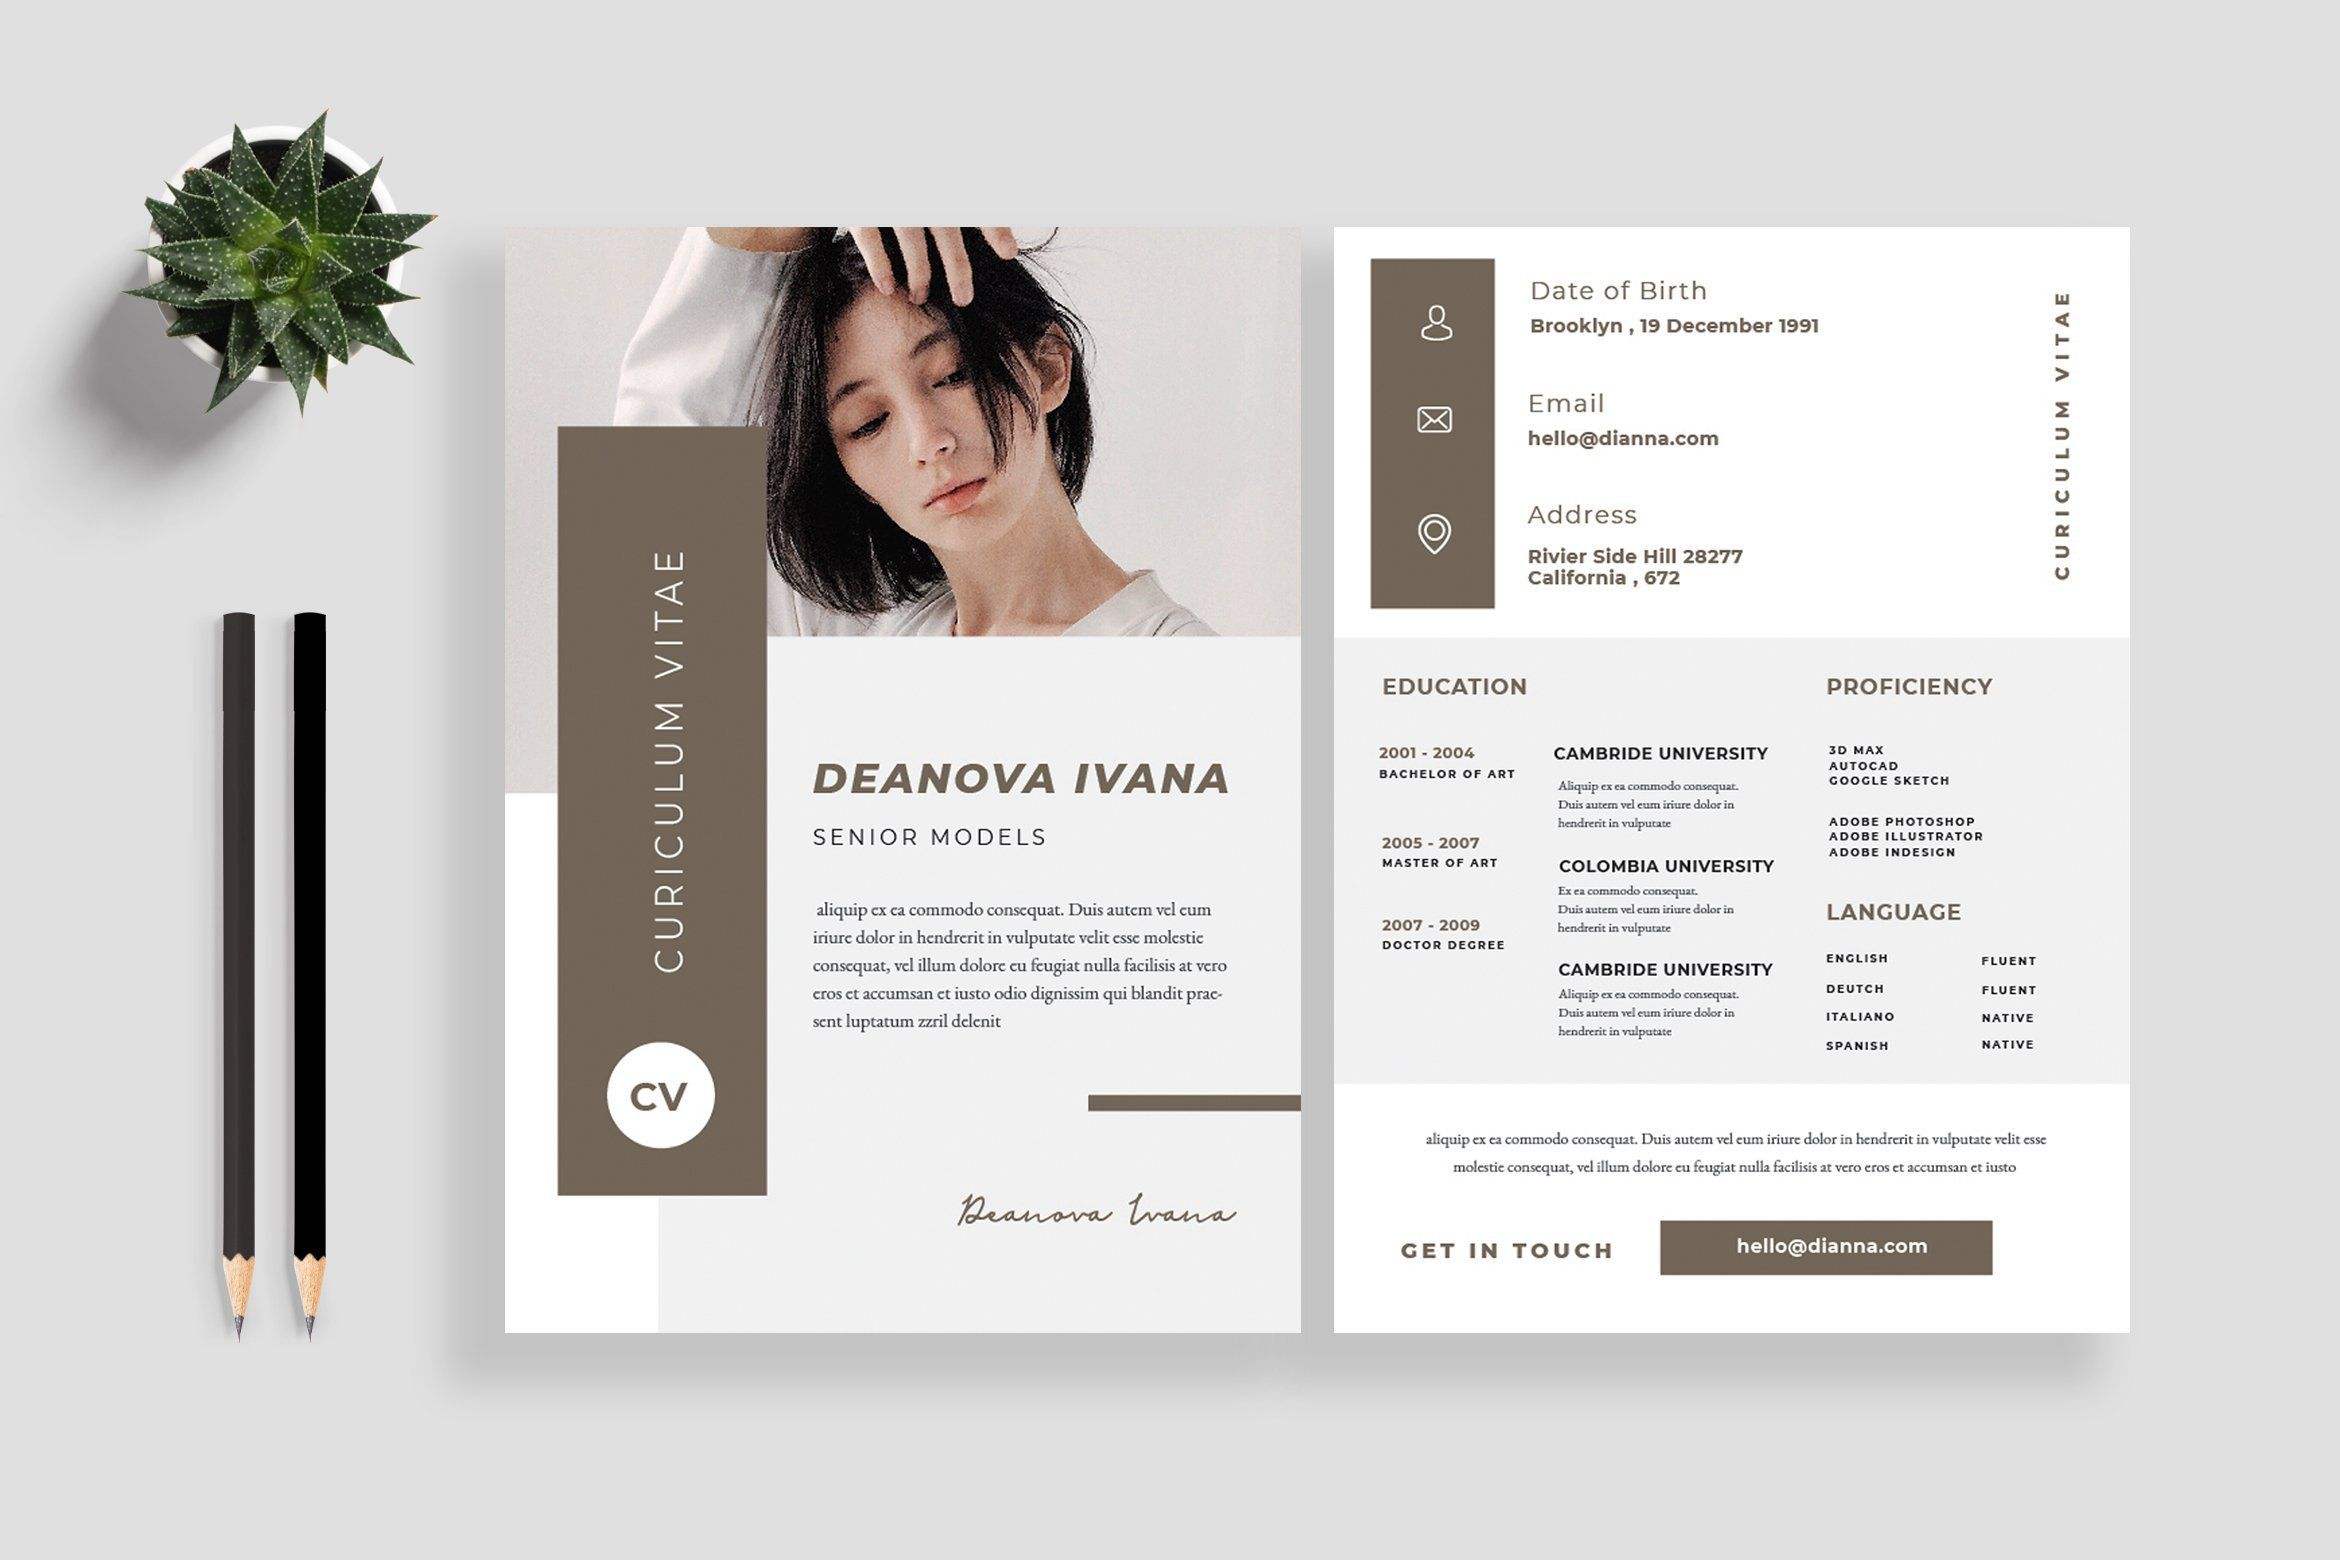 Resume Cv Template By Tmint Play On Creativemarket Resume Design Creative Resume Design Resume Design Template